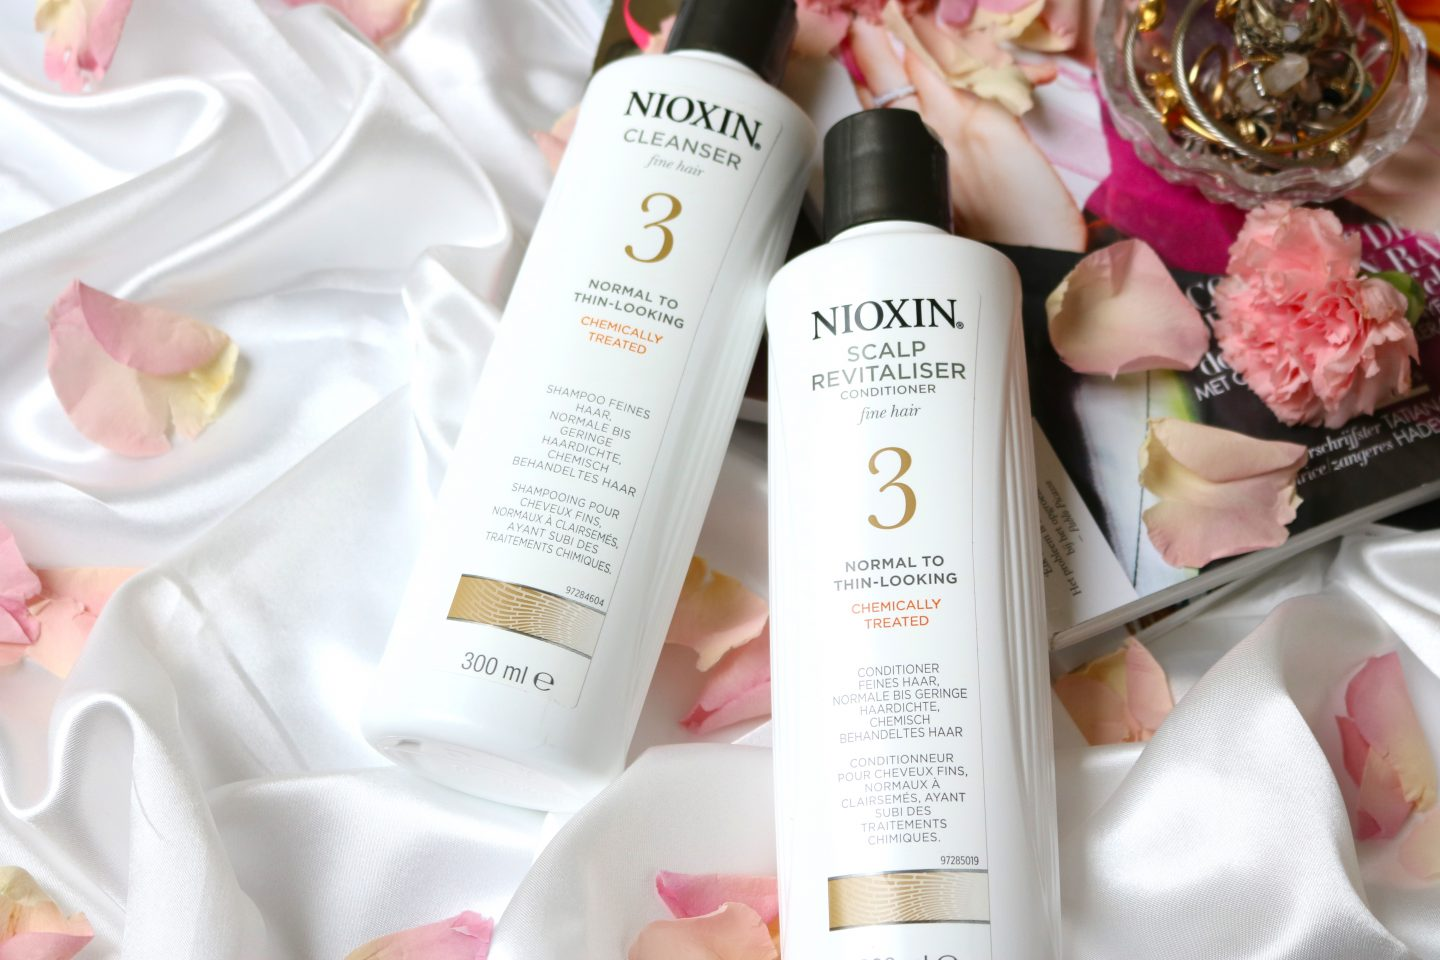 Nioxin for normal to thin-looking hair